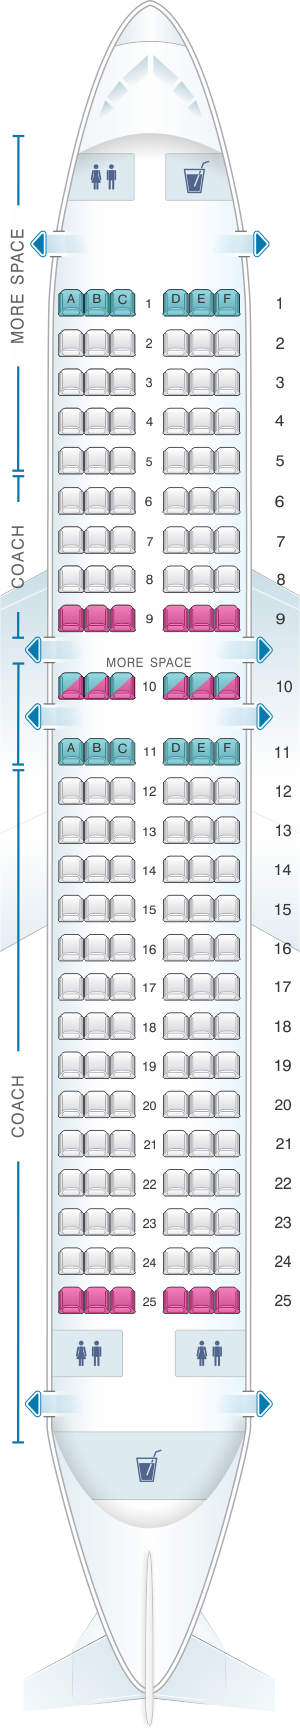 Seat map for JetBlue Airways Airbus A320